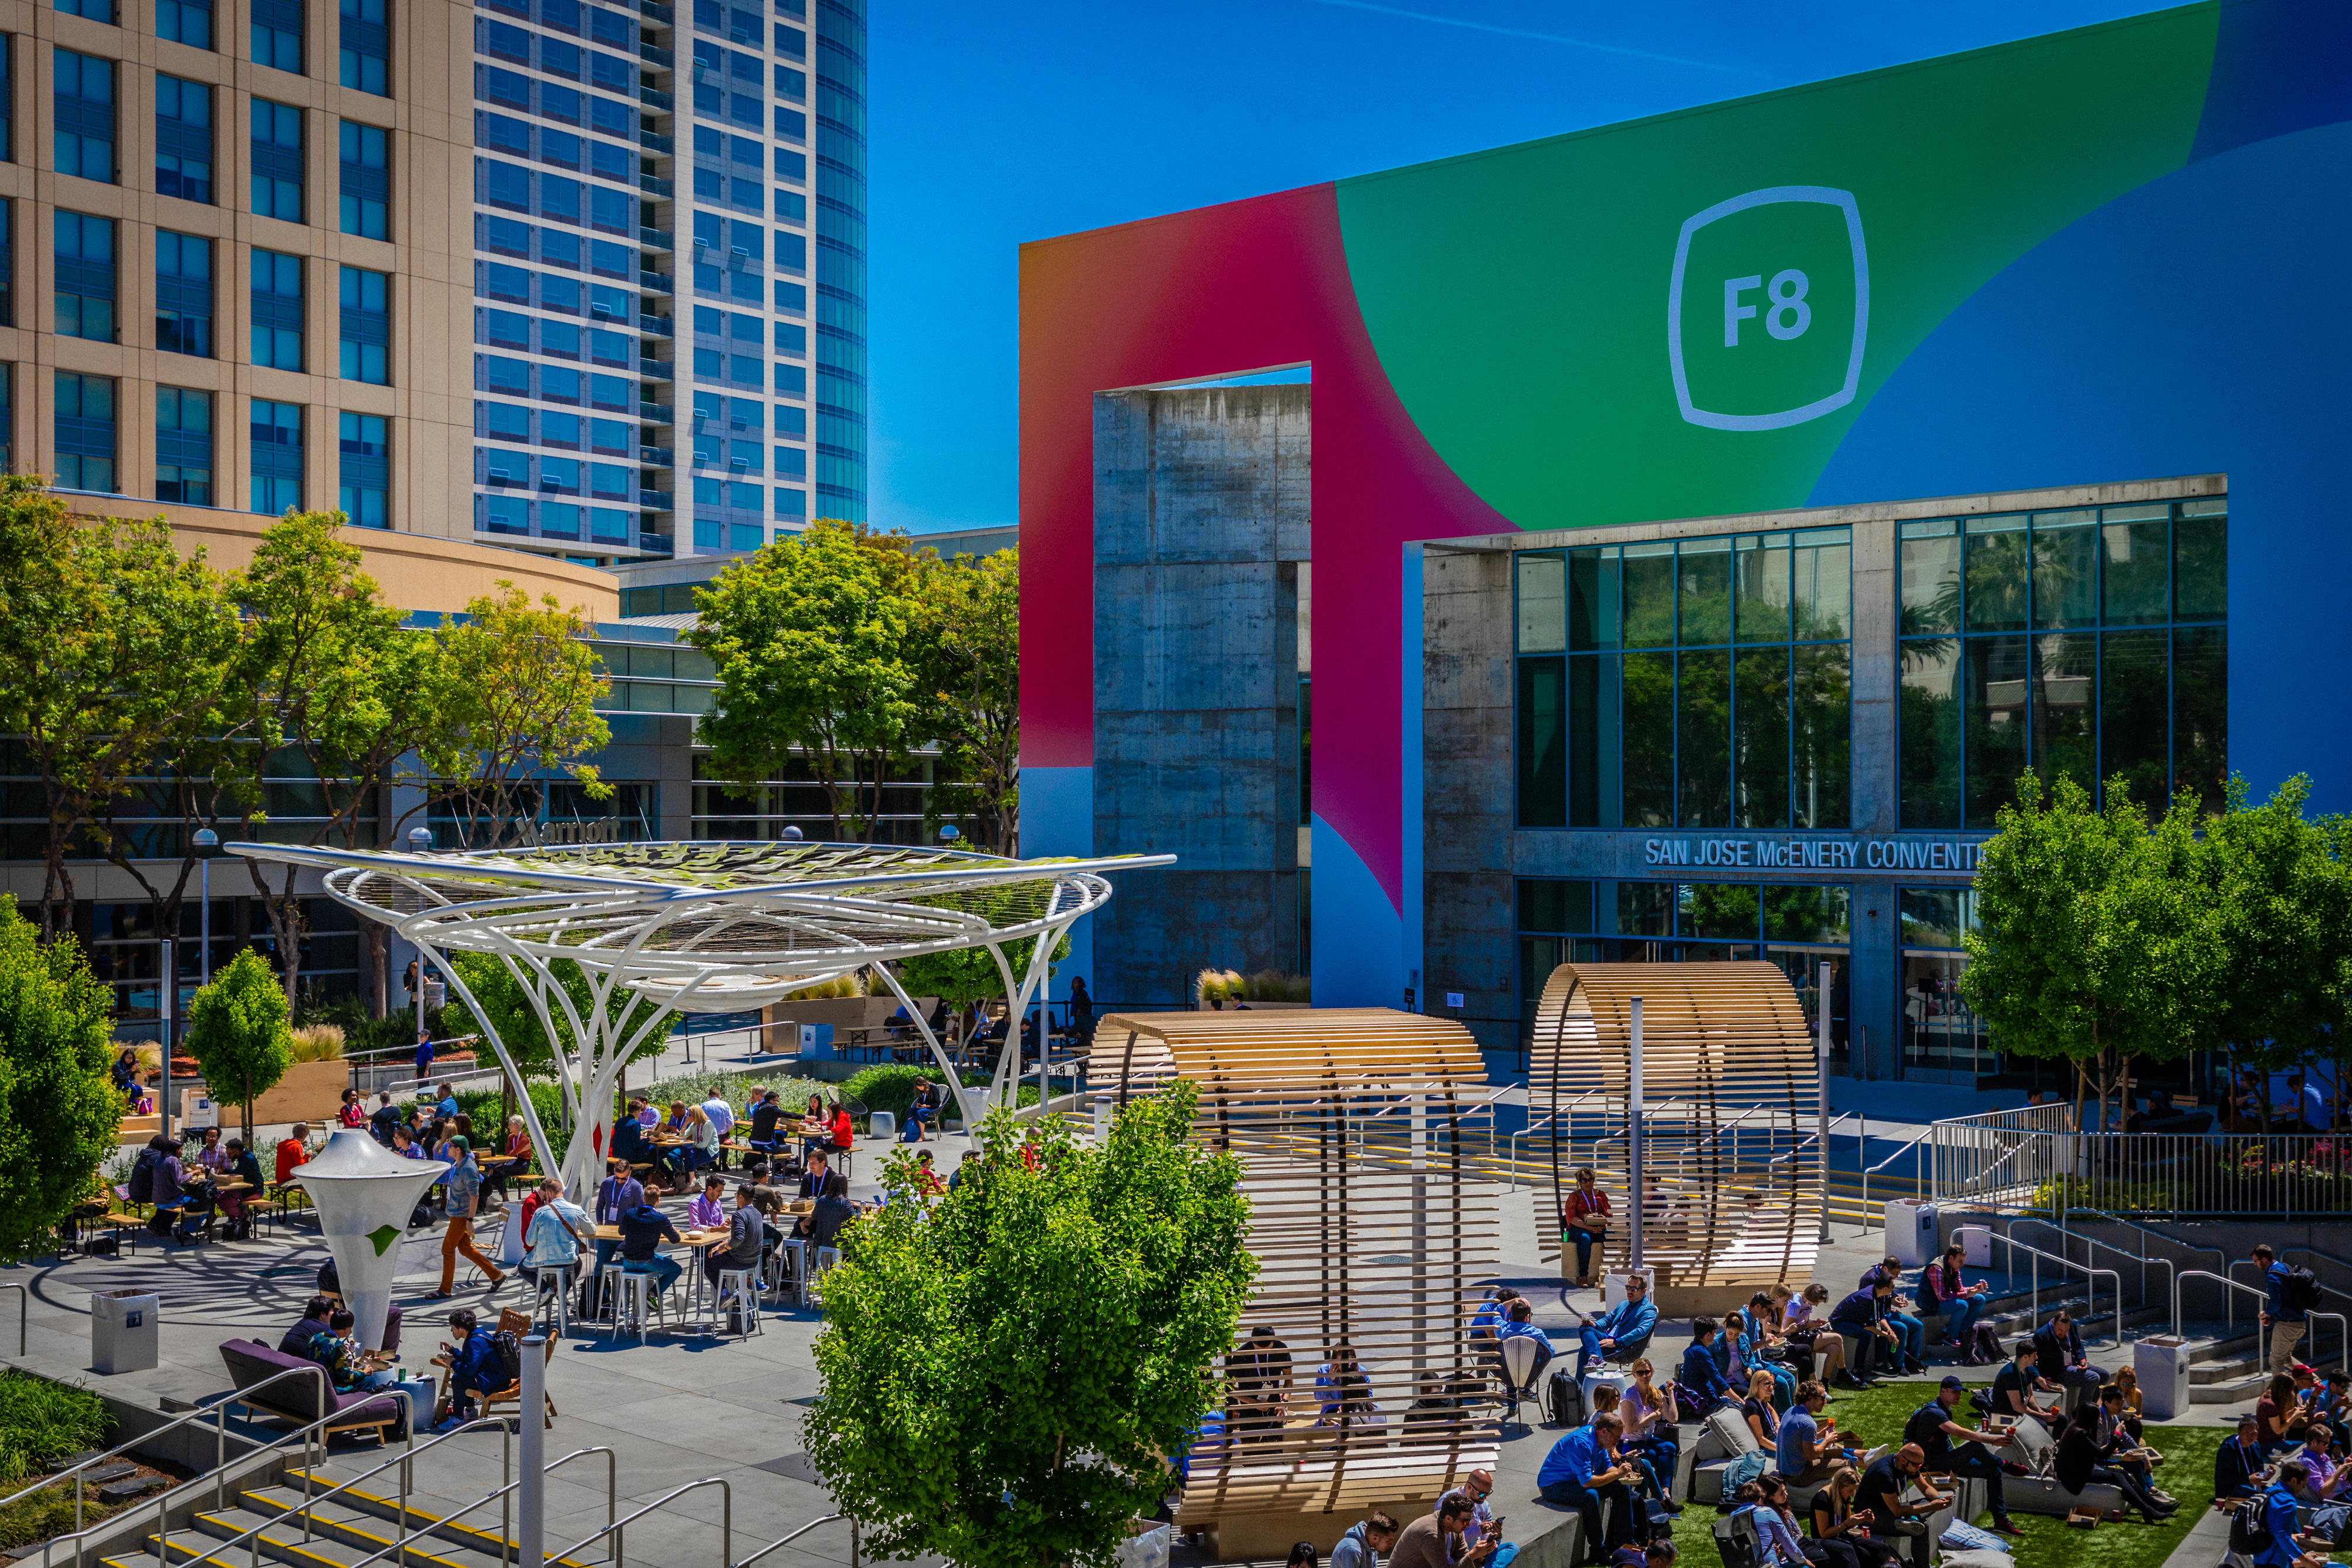 The scene outside Facebook's F8 conference